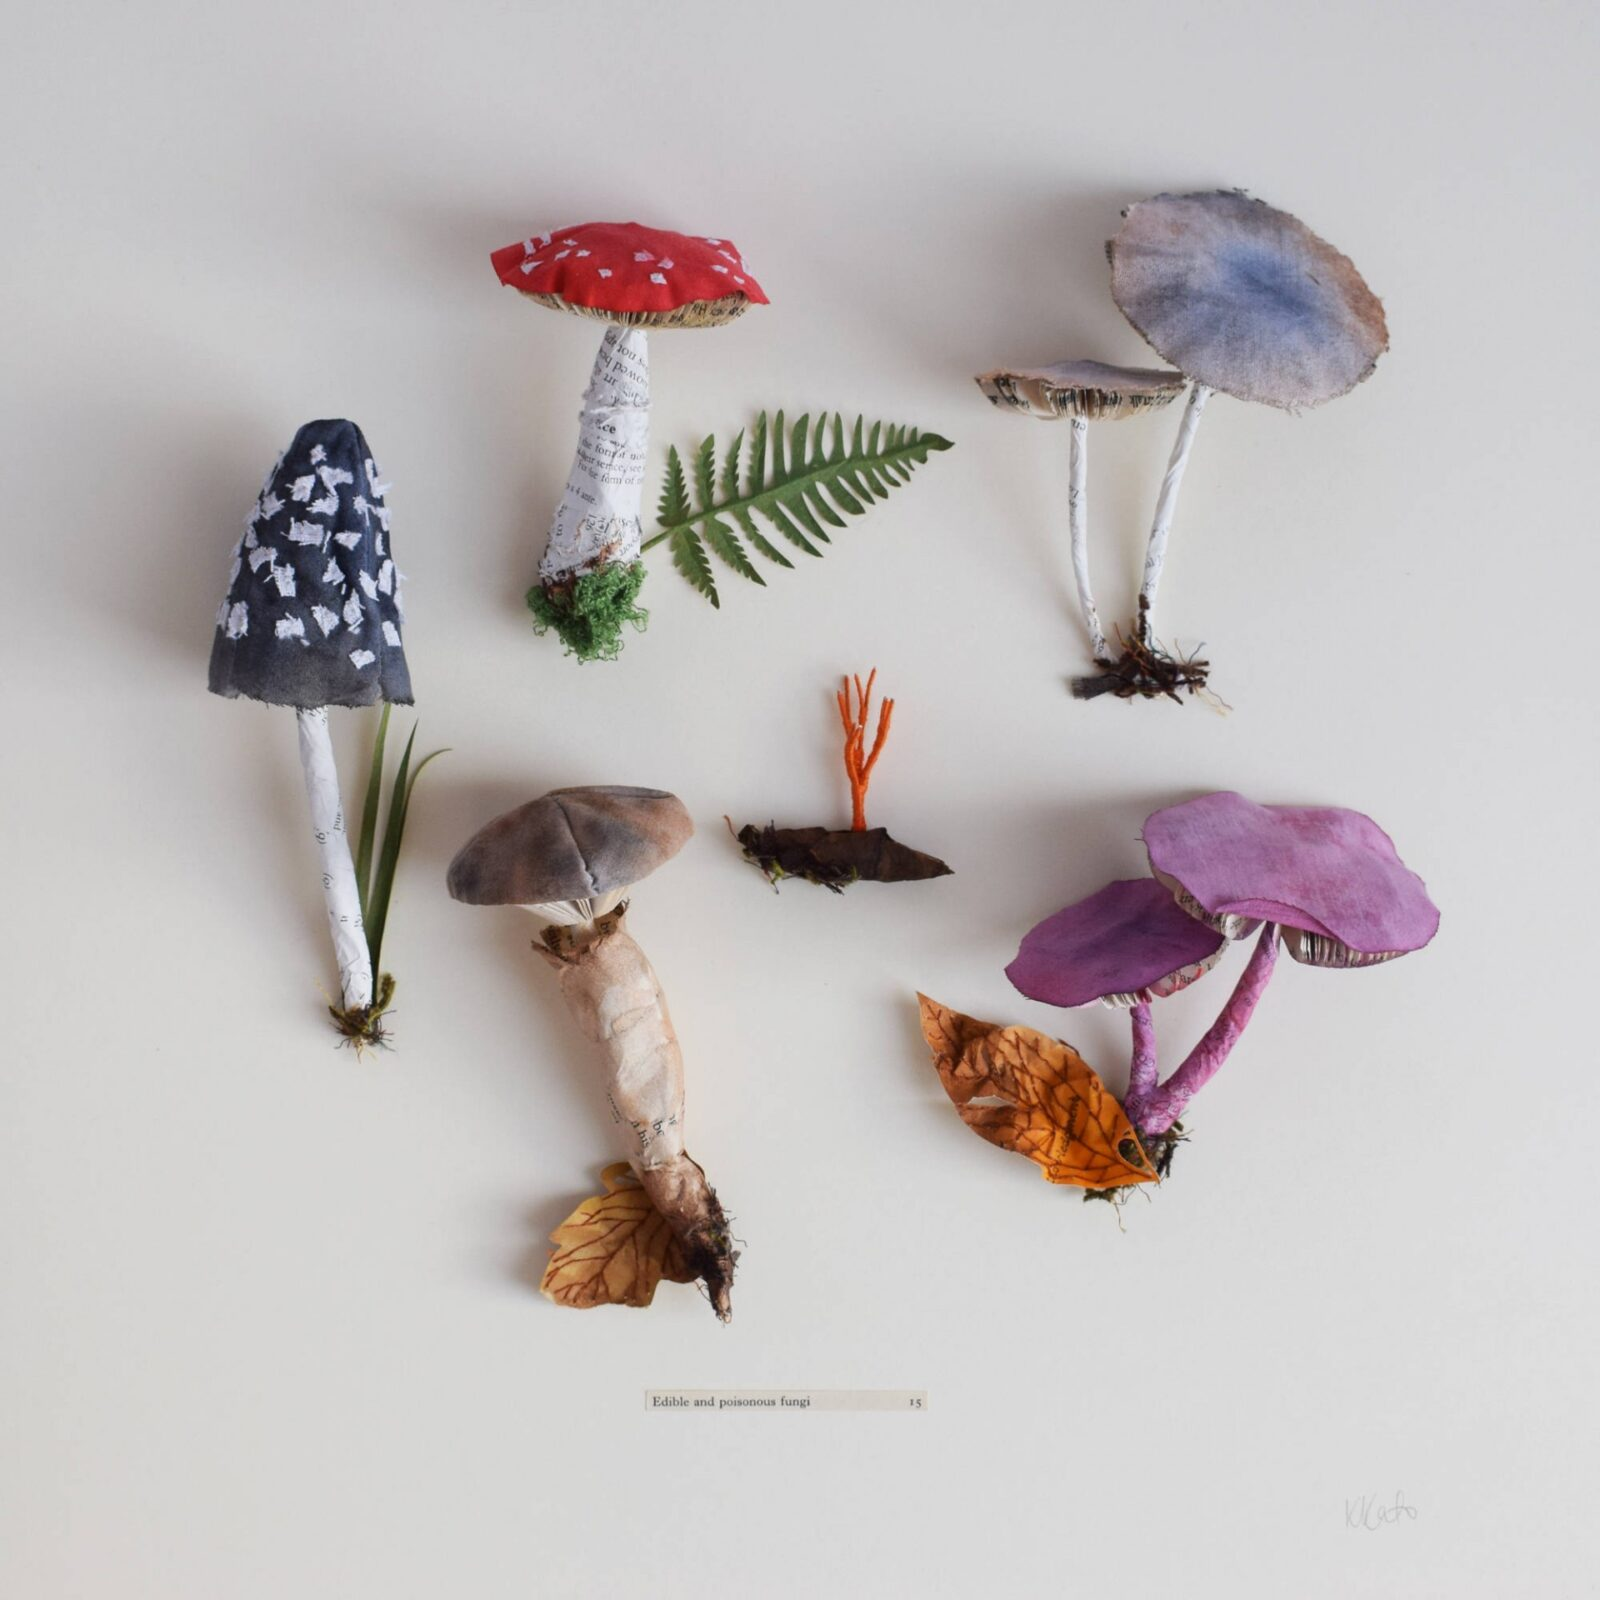 Botanical Sculptures Made From Recycled Paper by Artist Kate Kato